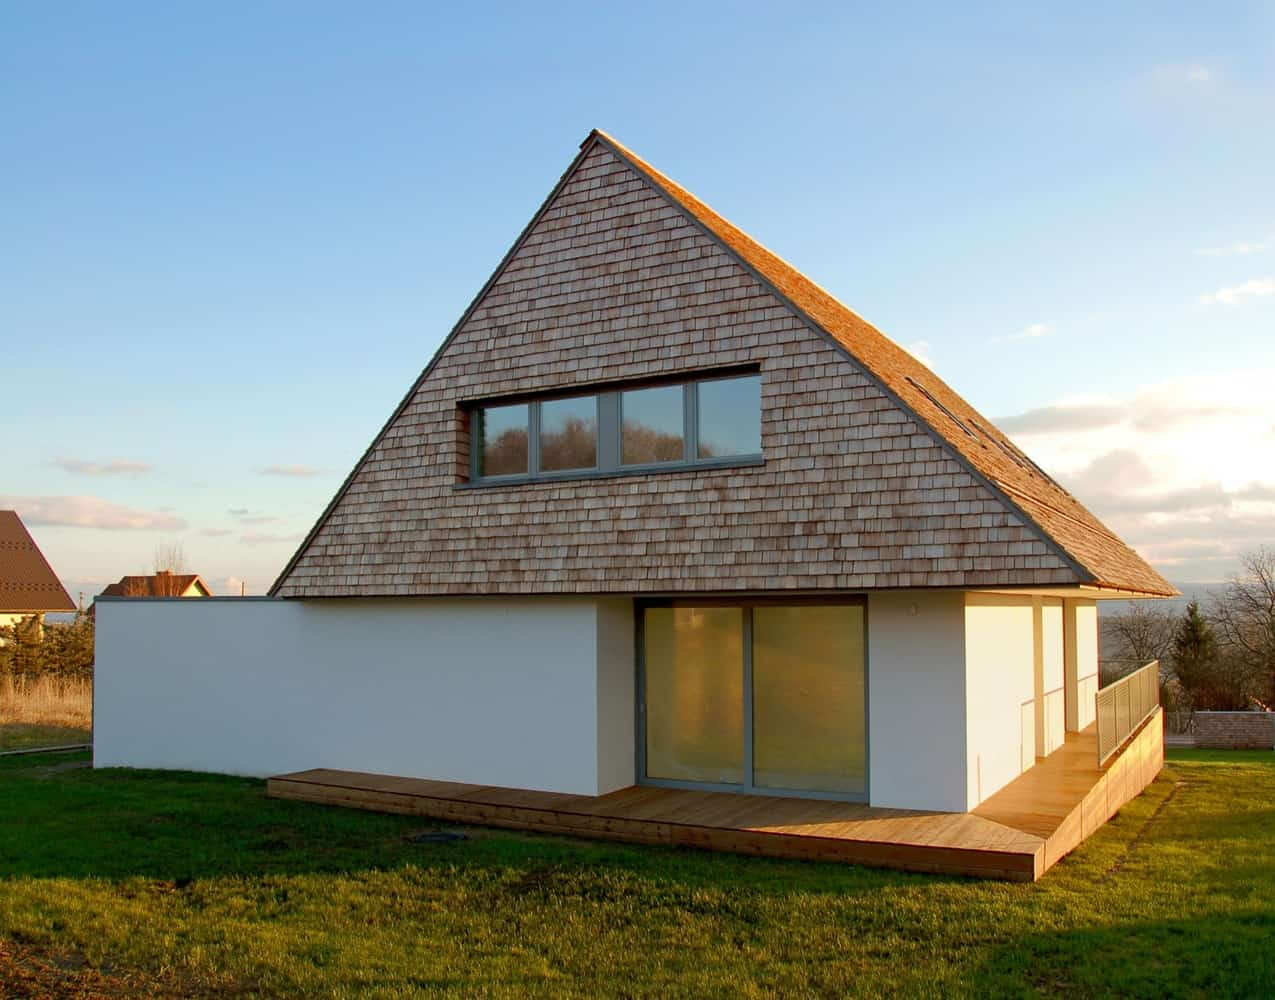 Beautiful Utter Simplicity - House With a View by doomo (4)